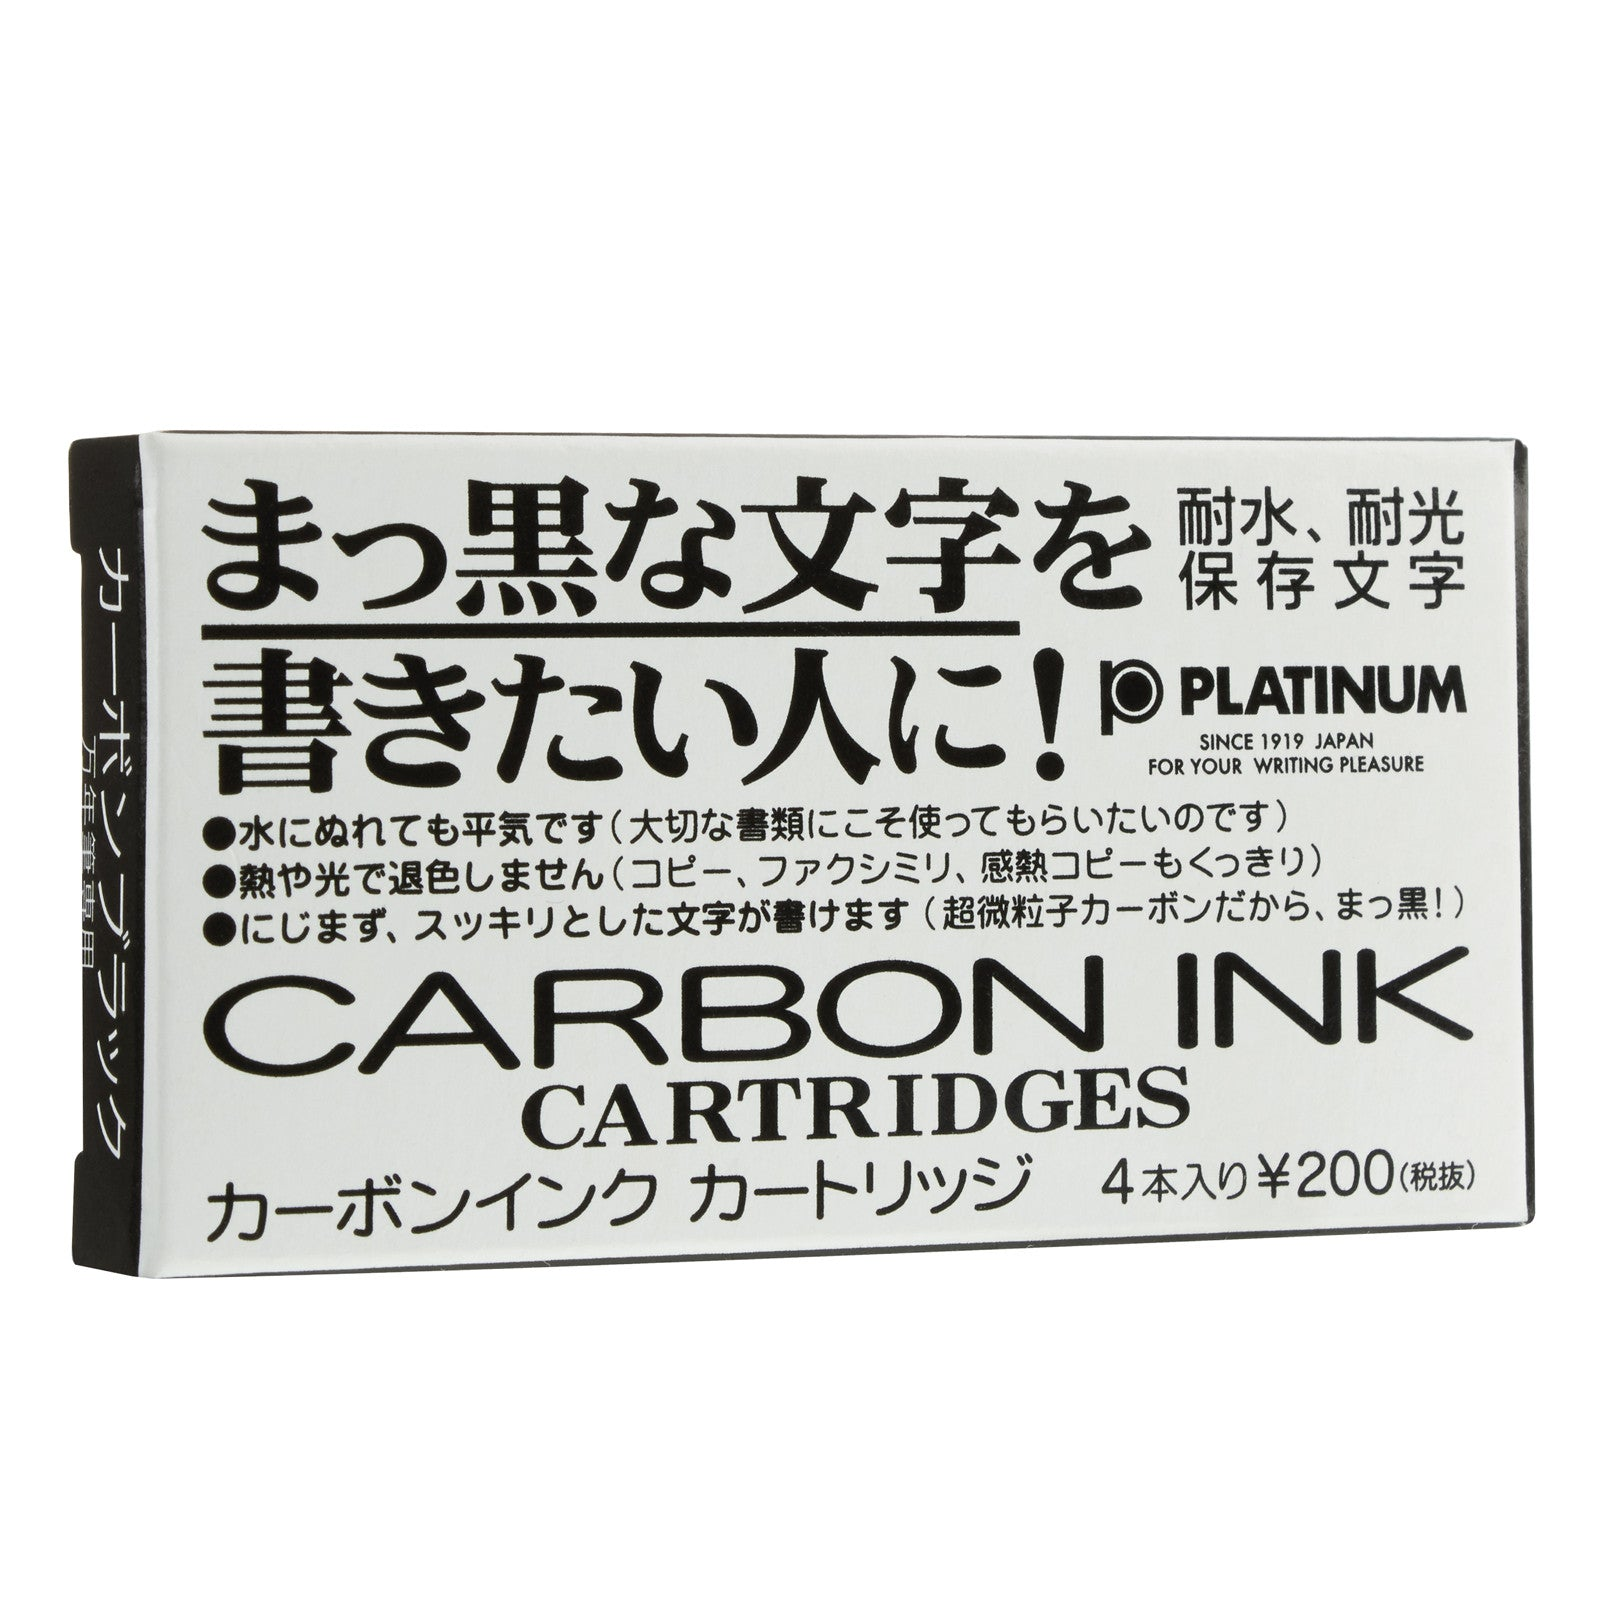 Carbon Ink Cartridges - Black